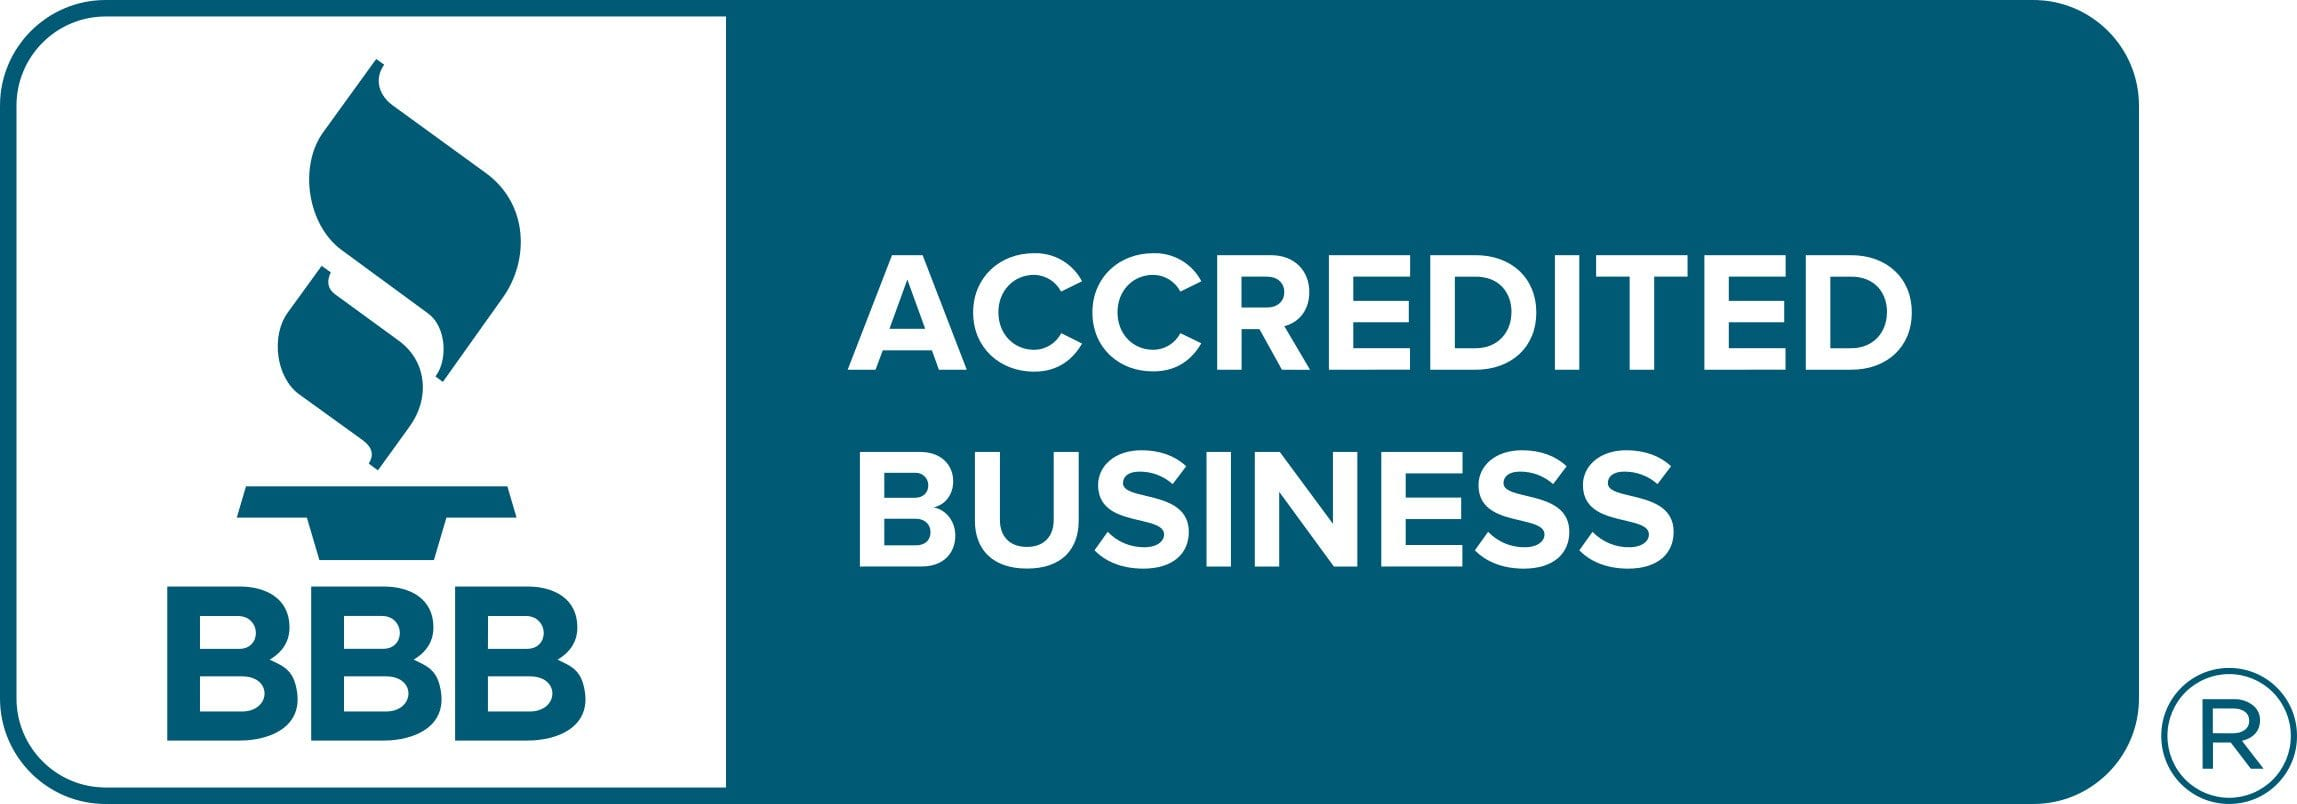 Better Business Bureau - Accredited Business Official Seal